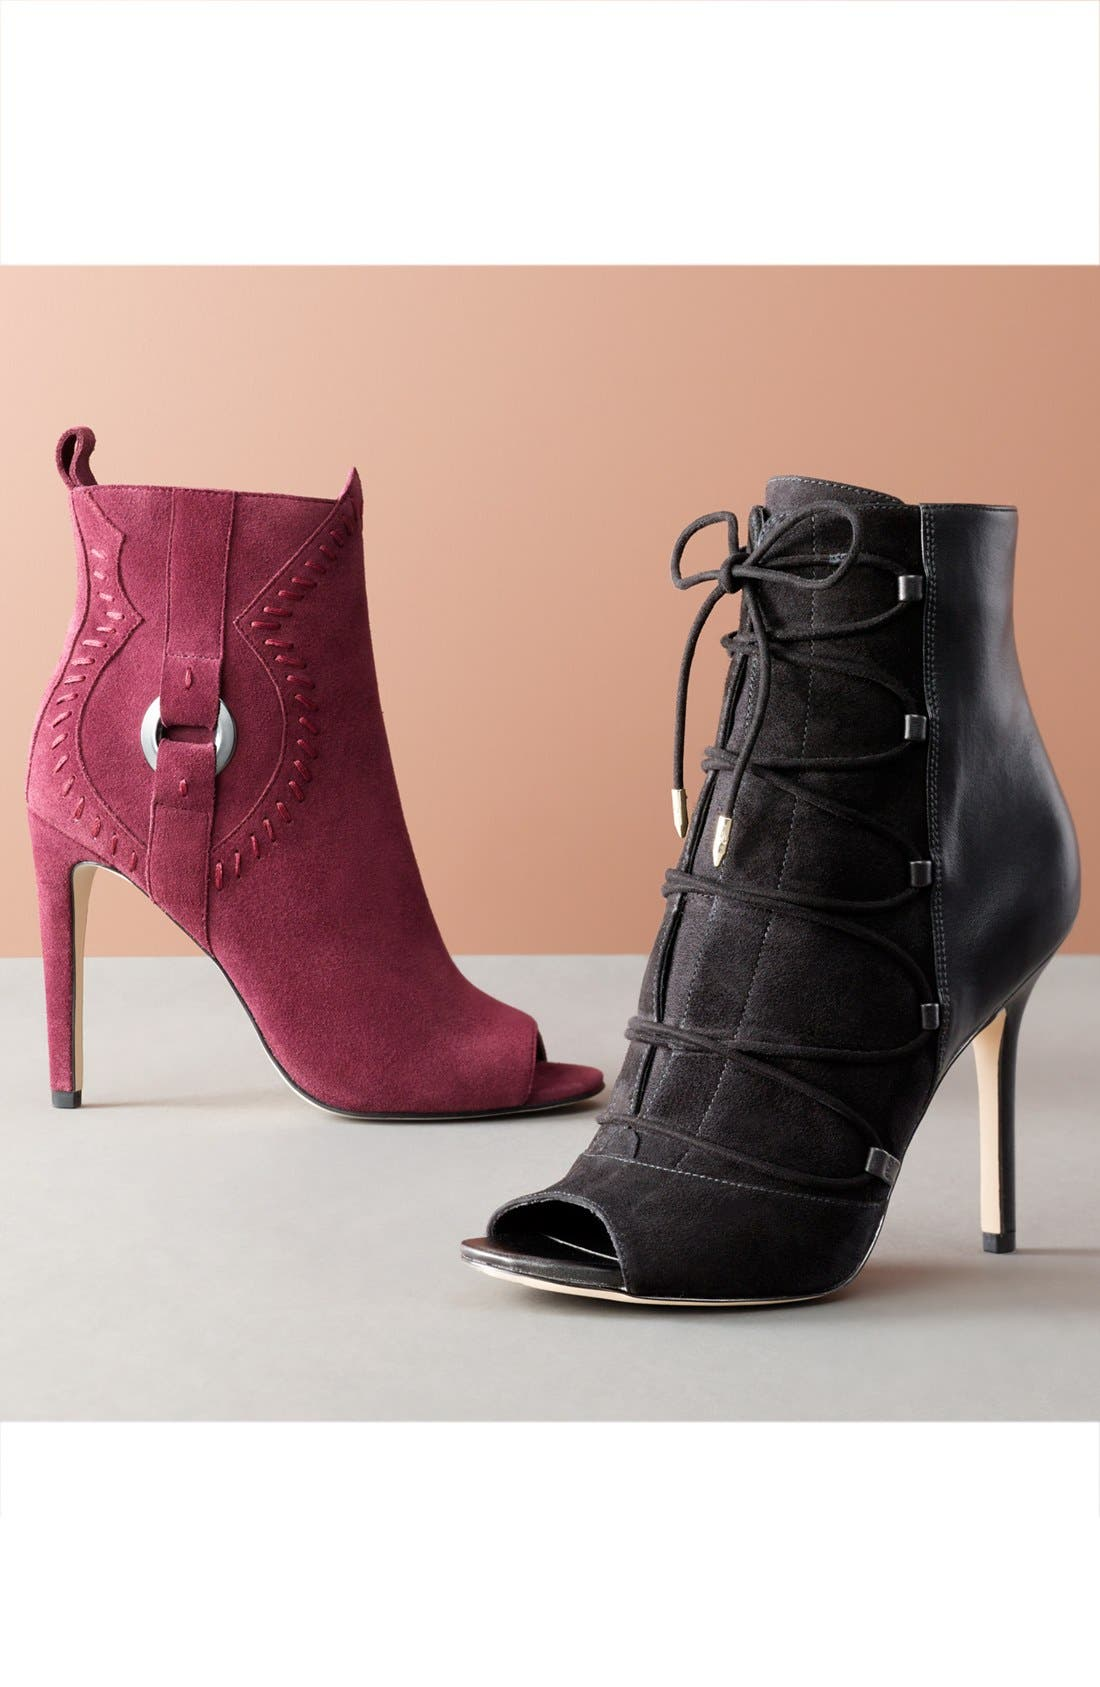 'Asher' Open Toe Bootie,                             Alternate thumbnail 6, color,                             001